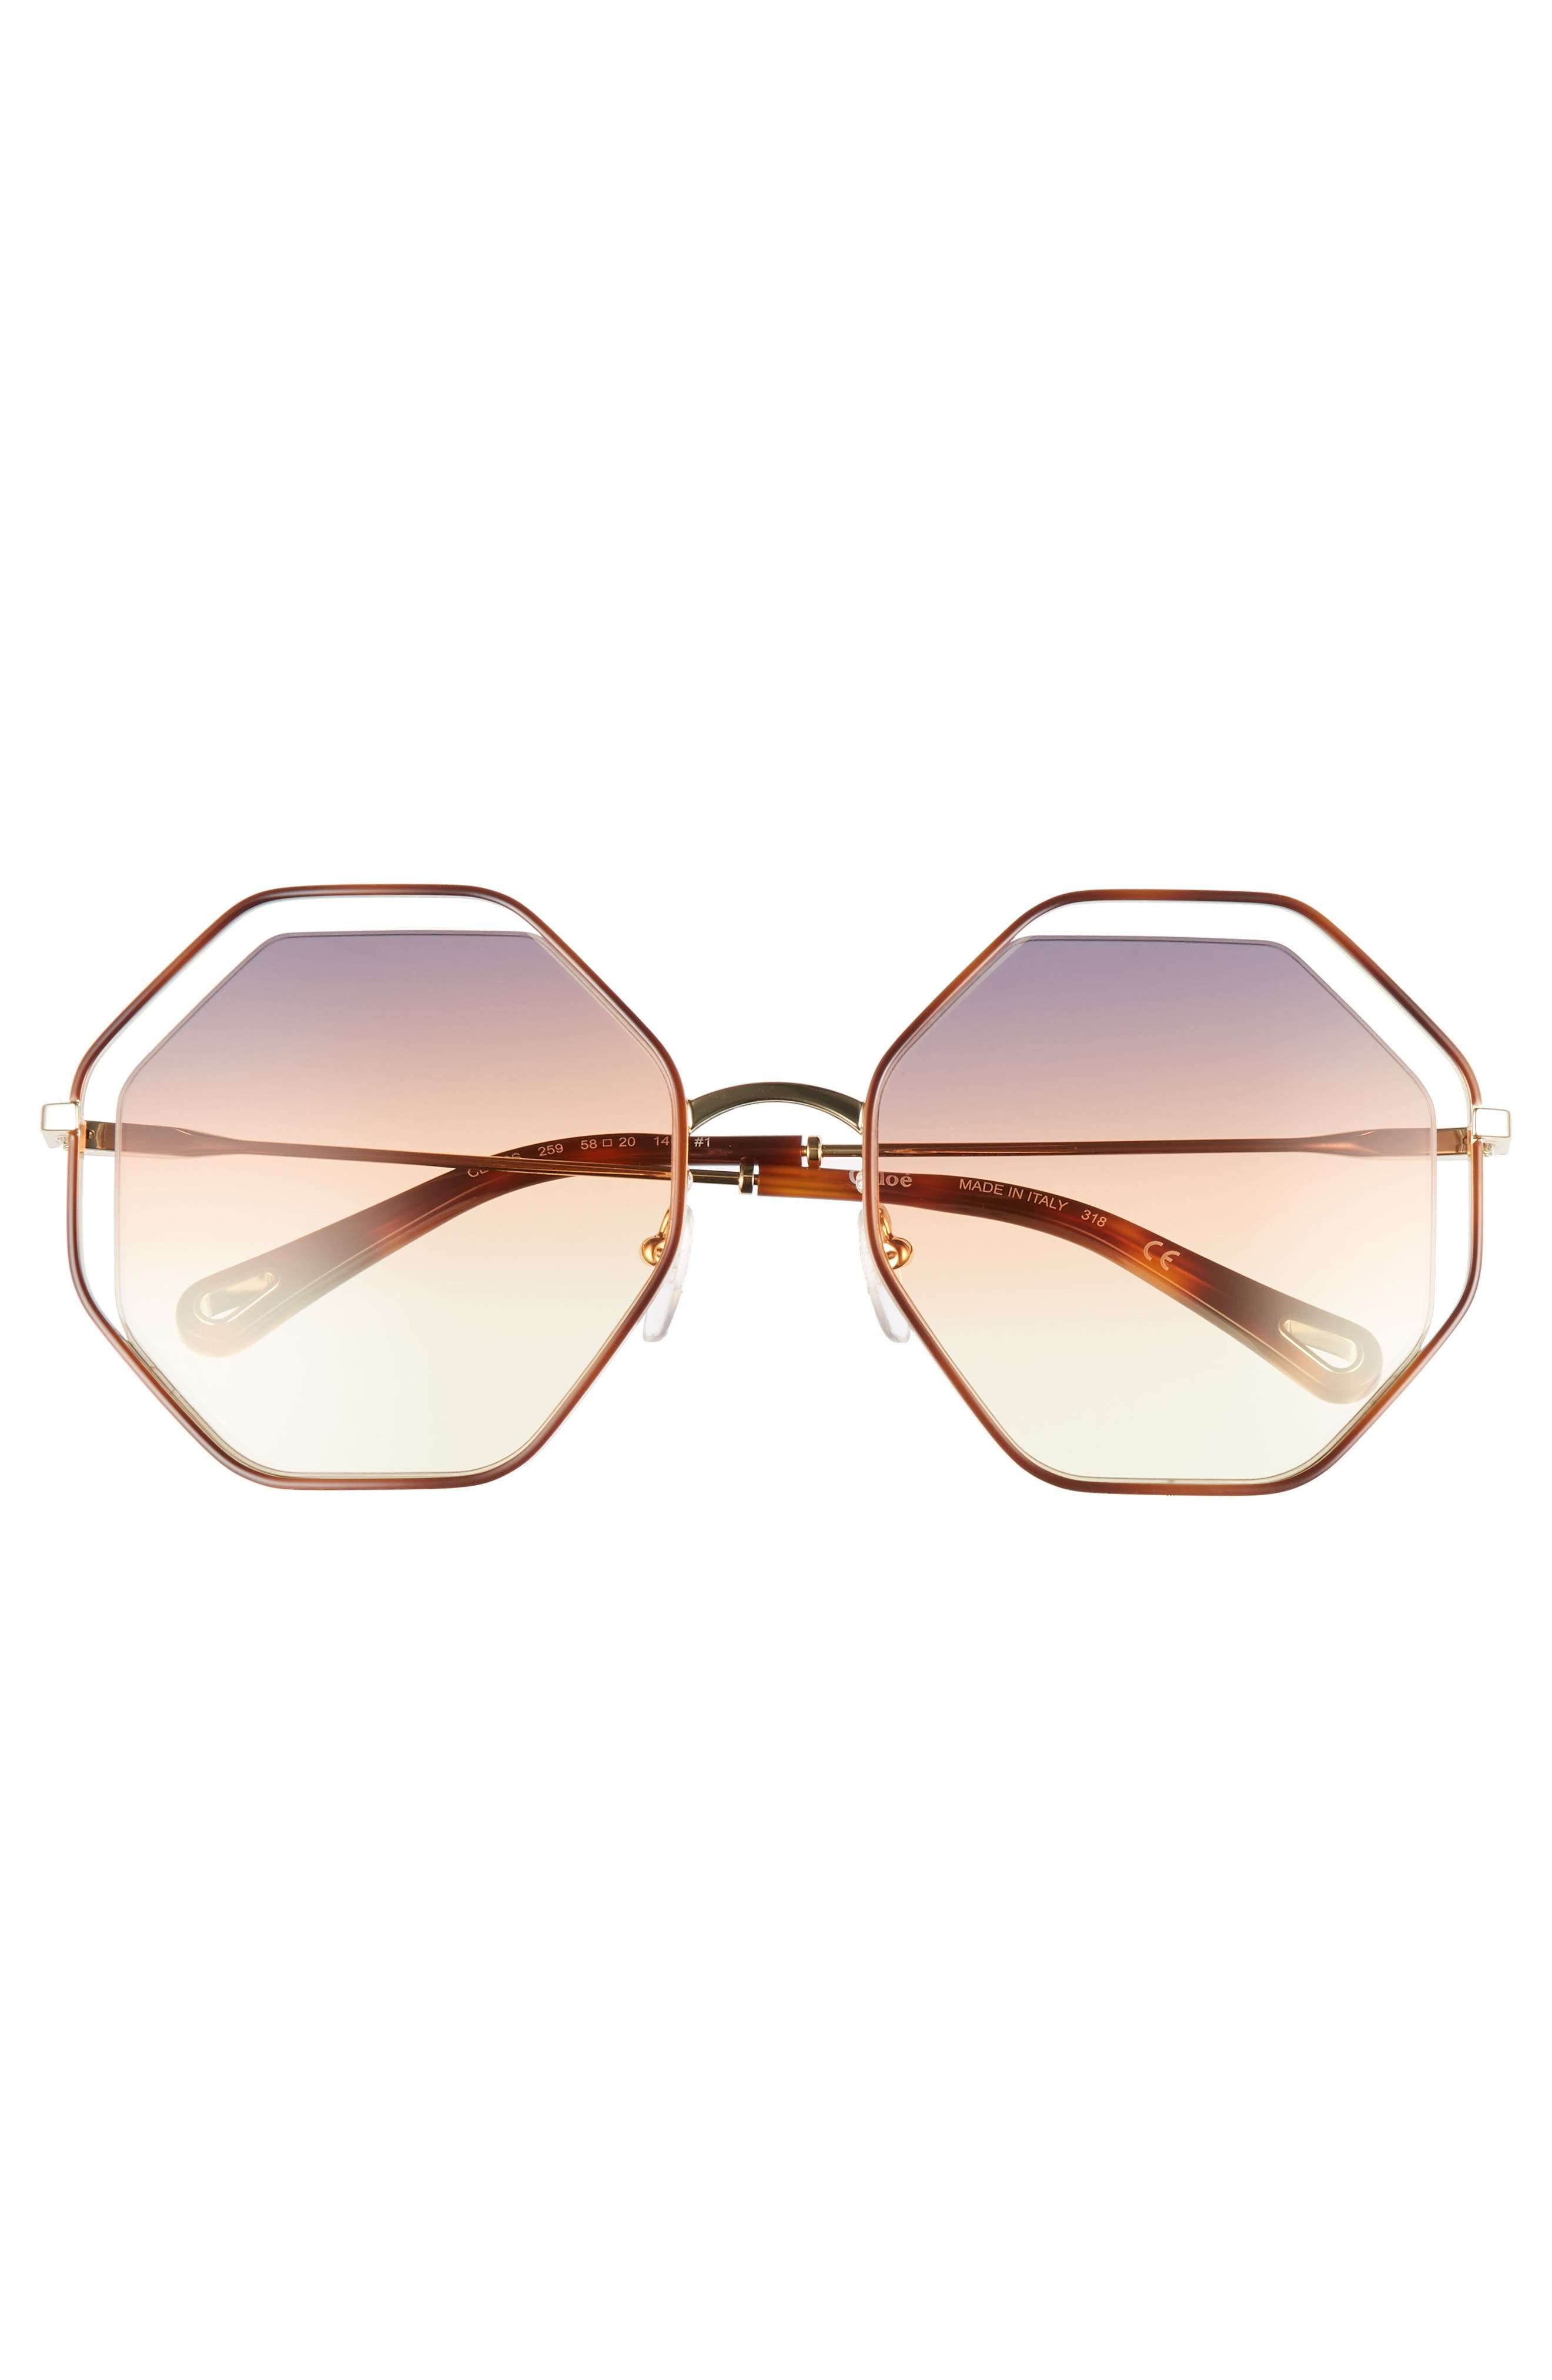 58mm Octagonal Halo Lens Sunglasses,                             Alternate thumbnail 3, color,                             HAVANA/ GREY ORANGE YELLOW